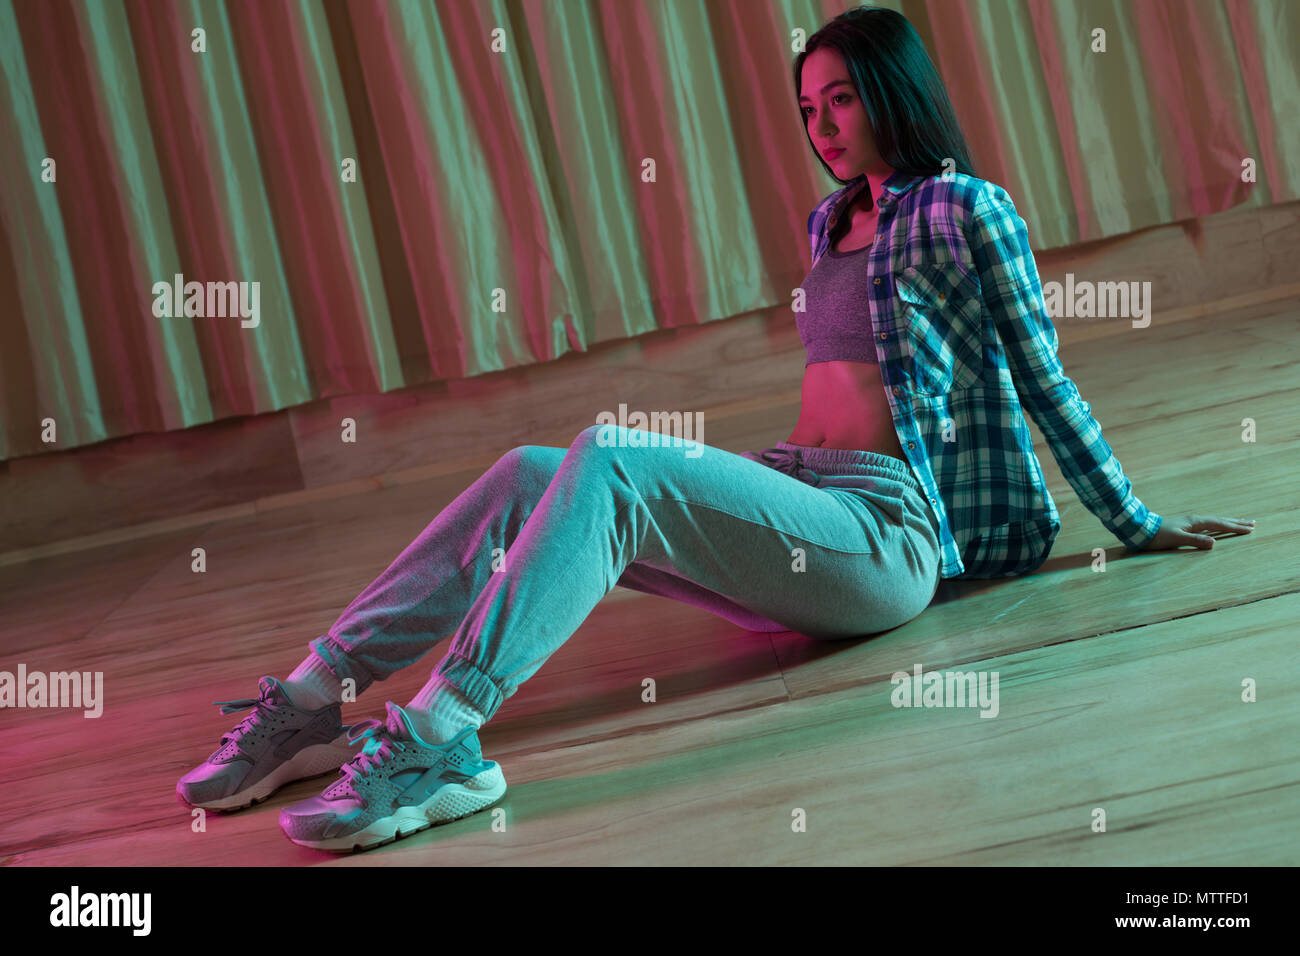 Female dancer relaxing in dance studio Stock Photo